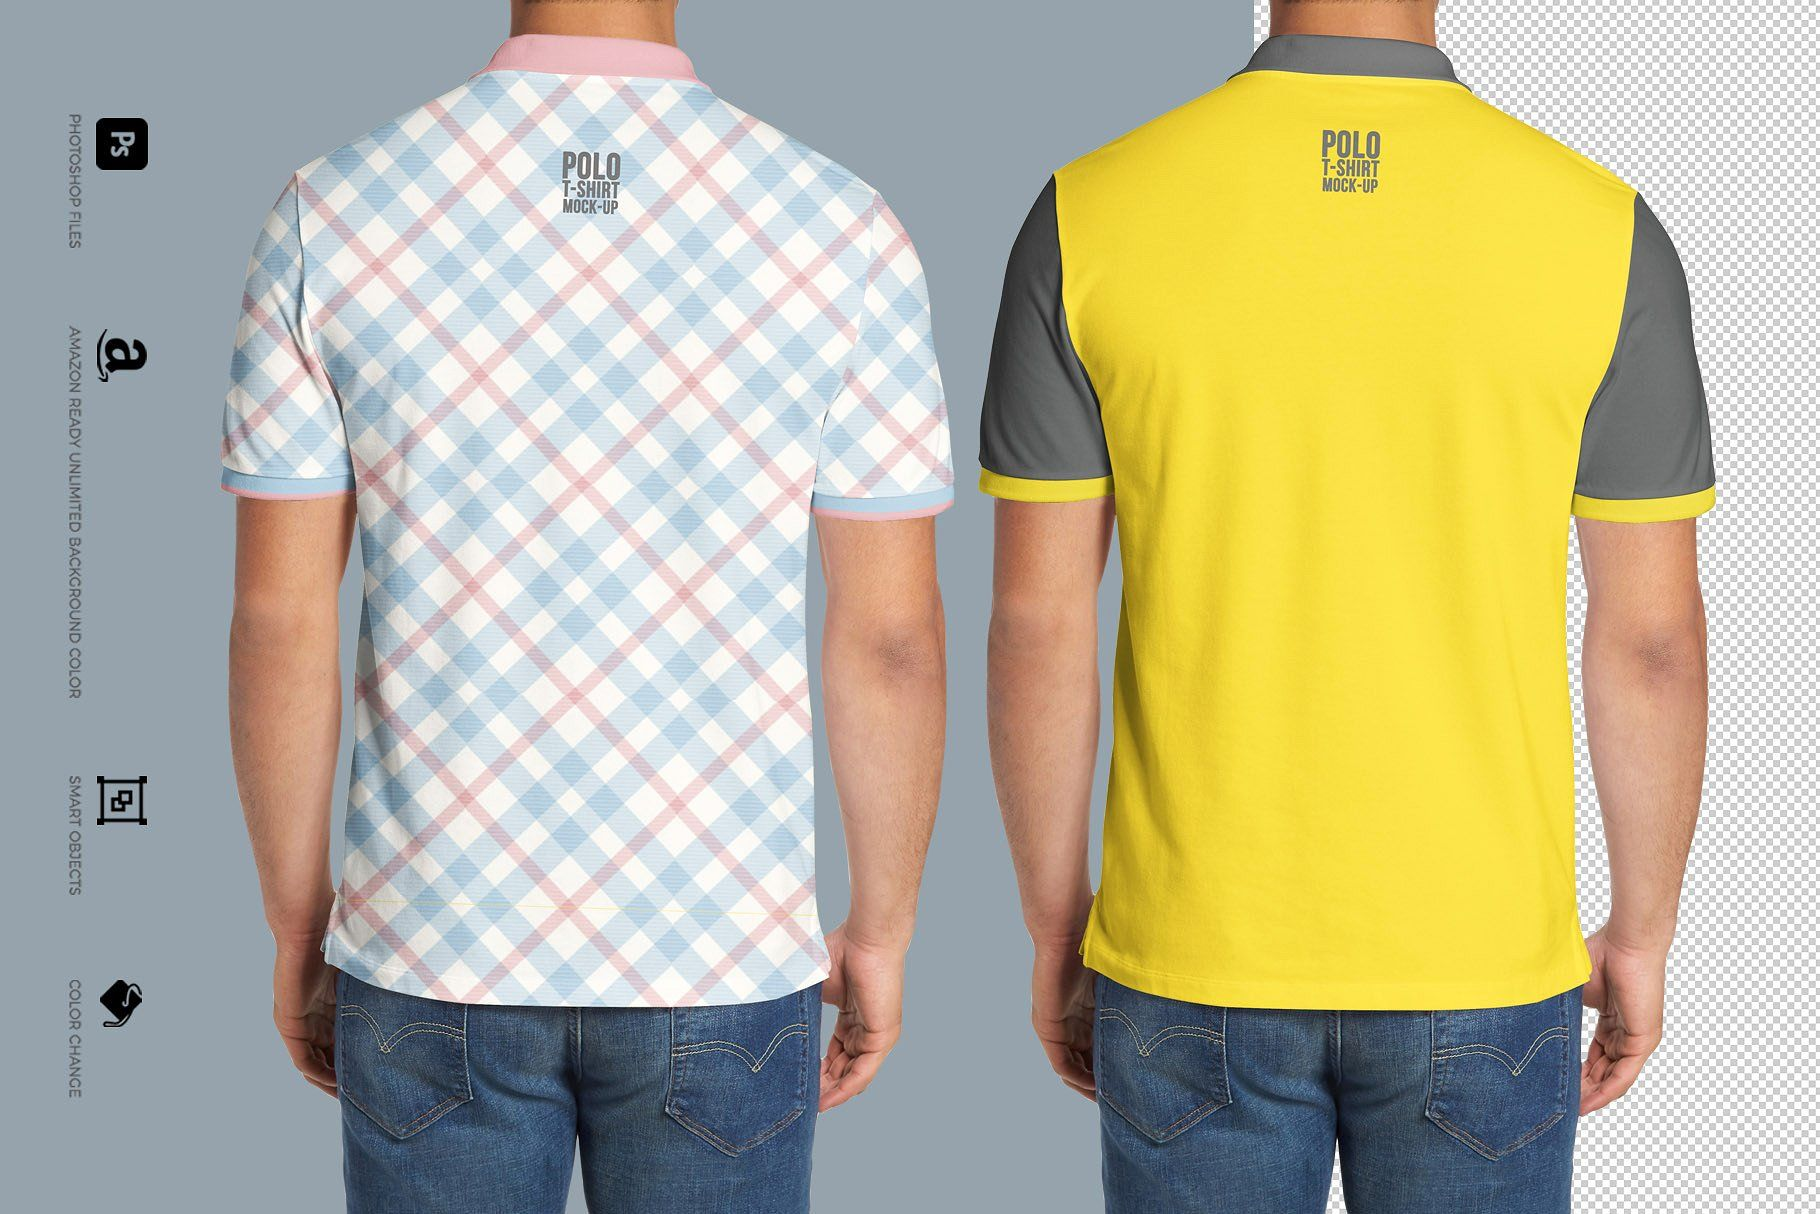 Polo T Shirt Mockup Front And Back Psd Free Polo Shirt Mock Up Apparel Design Shirts Polo Shirt